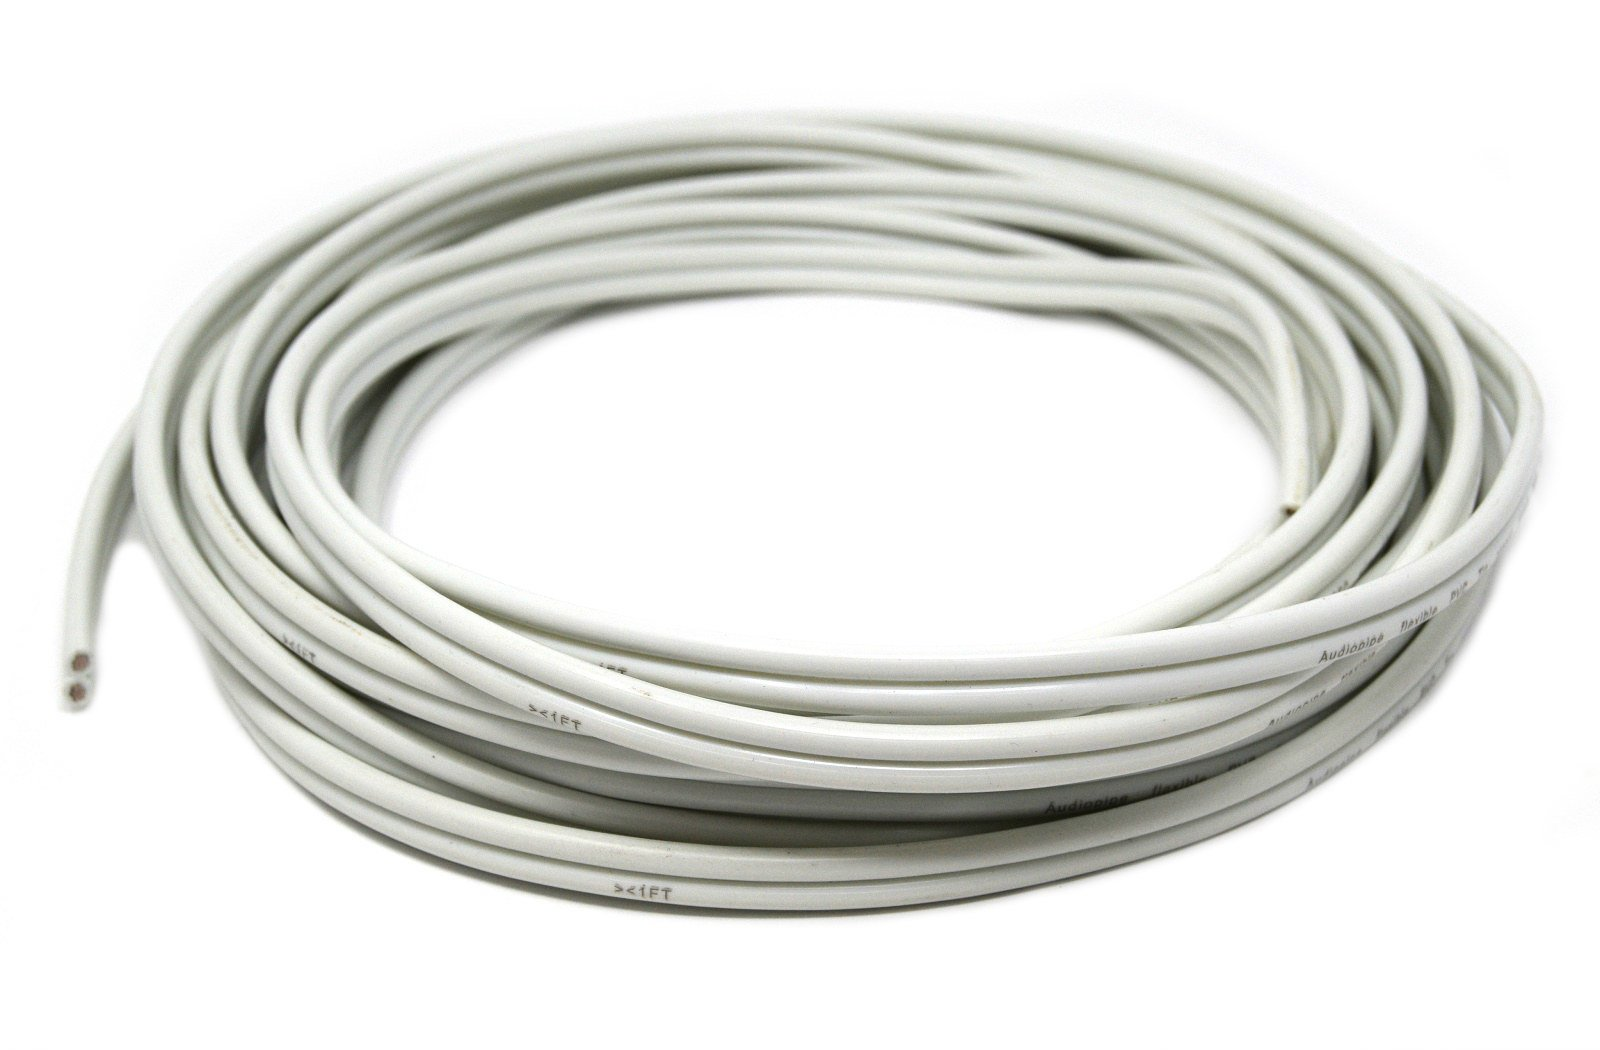 Audiopipe 25 FT 12 GAUGE WHITE MARINE SPEAKER WIRE STRANDED TIN COPPER PLATED